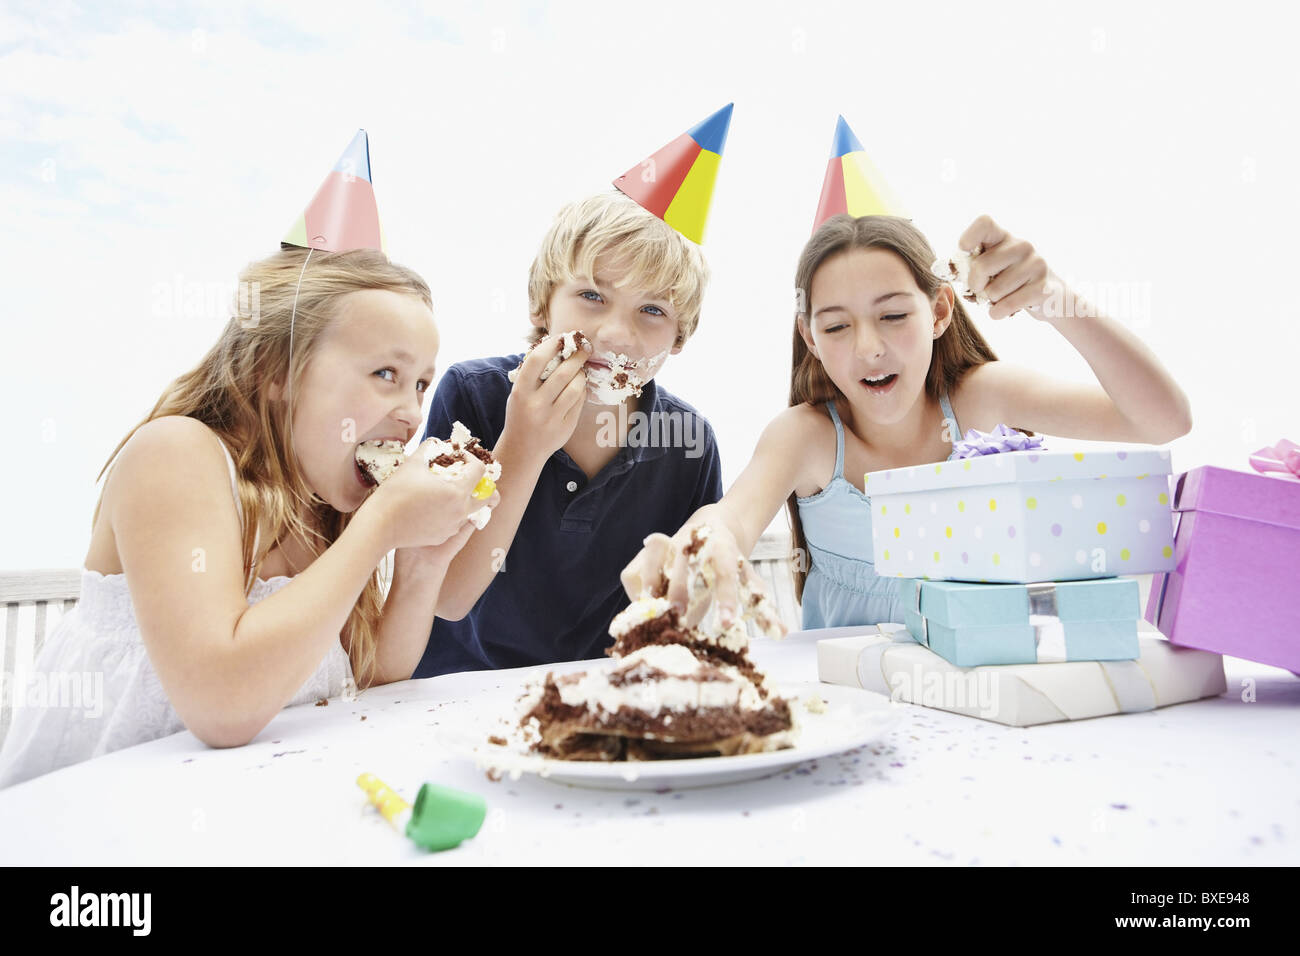 Children eating birthday cake Stock Photo 33505928 Alamy